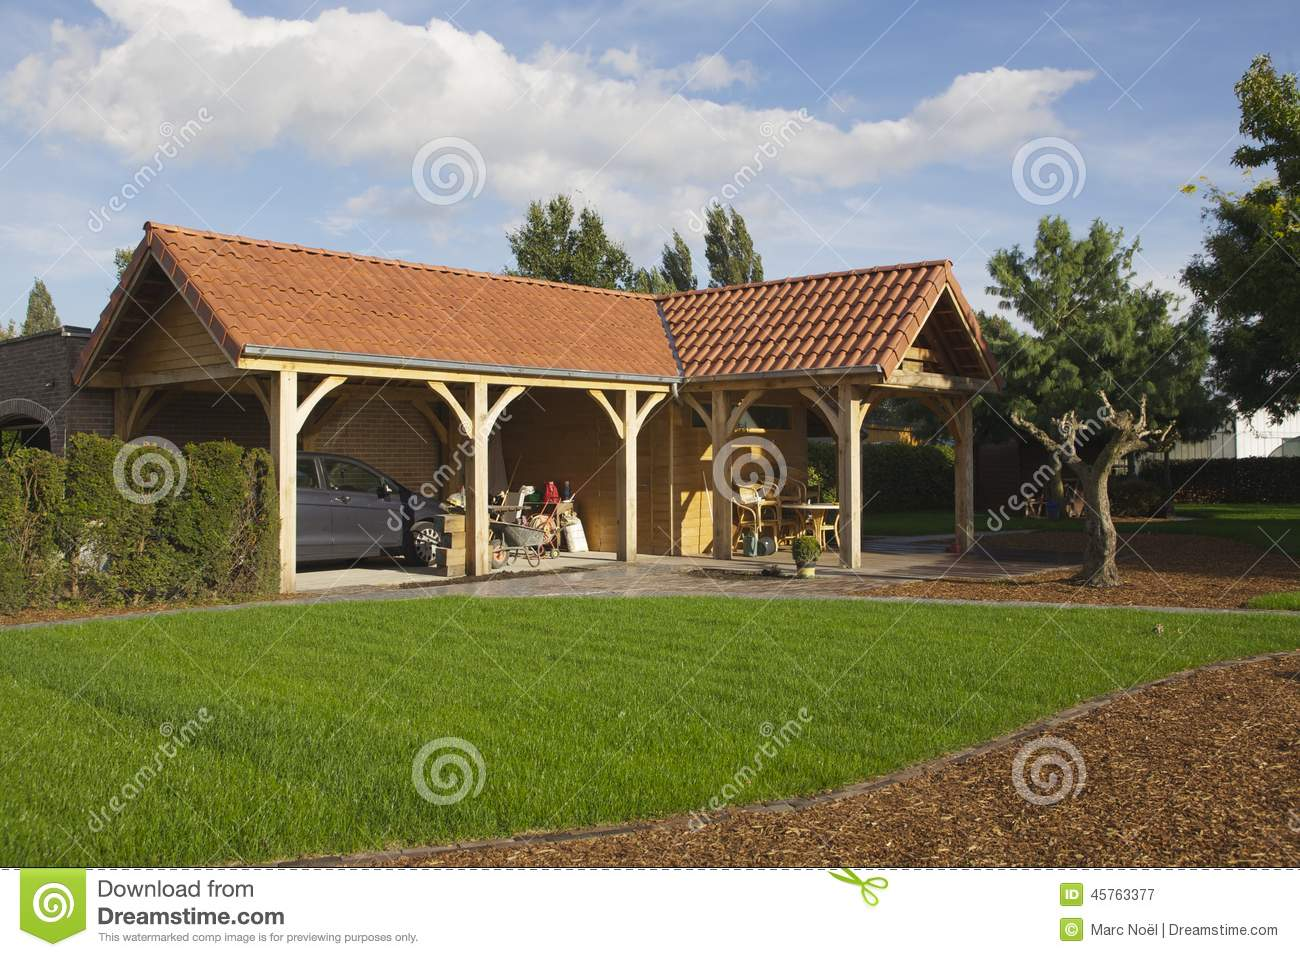 Karpot 1,310 Carport Photos - Free & Royalty-free Stock Photos From Dreamstime